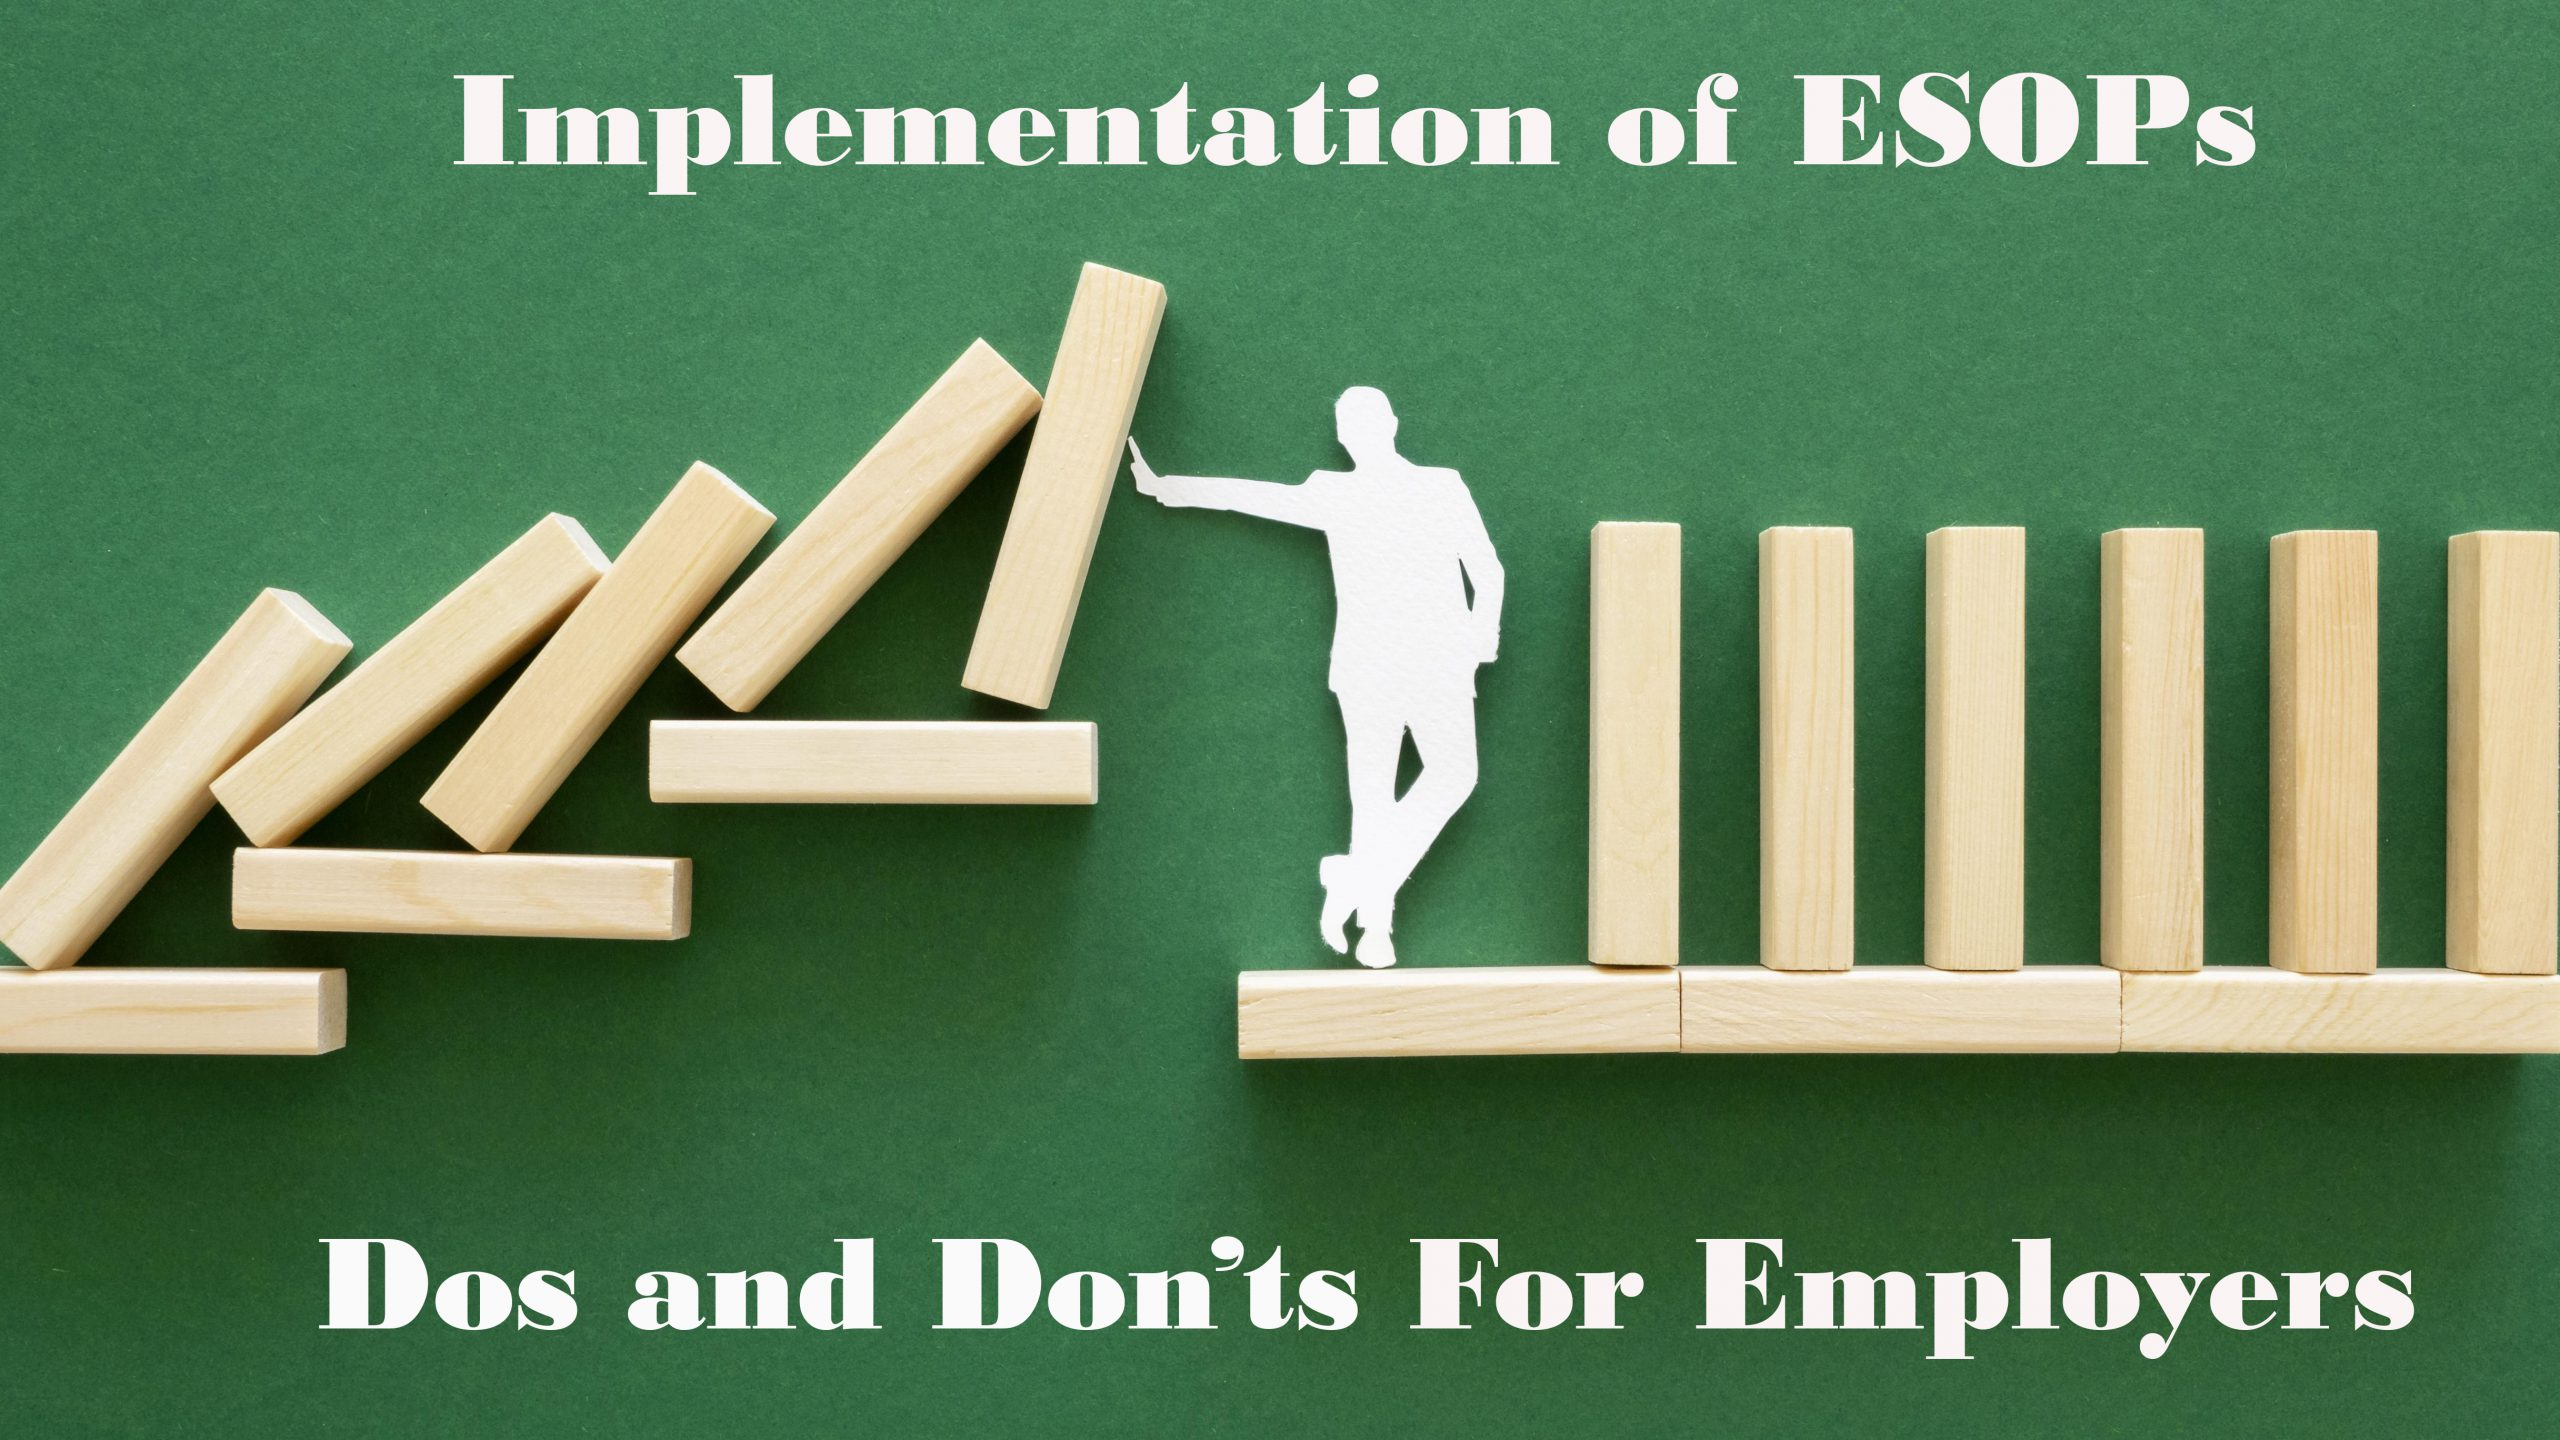 Dos and Dont's ESOP